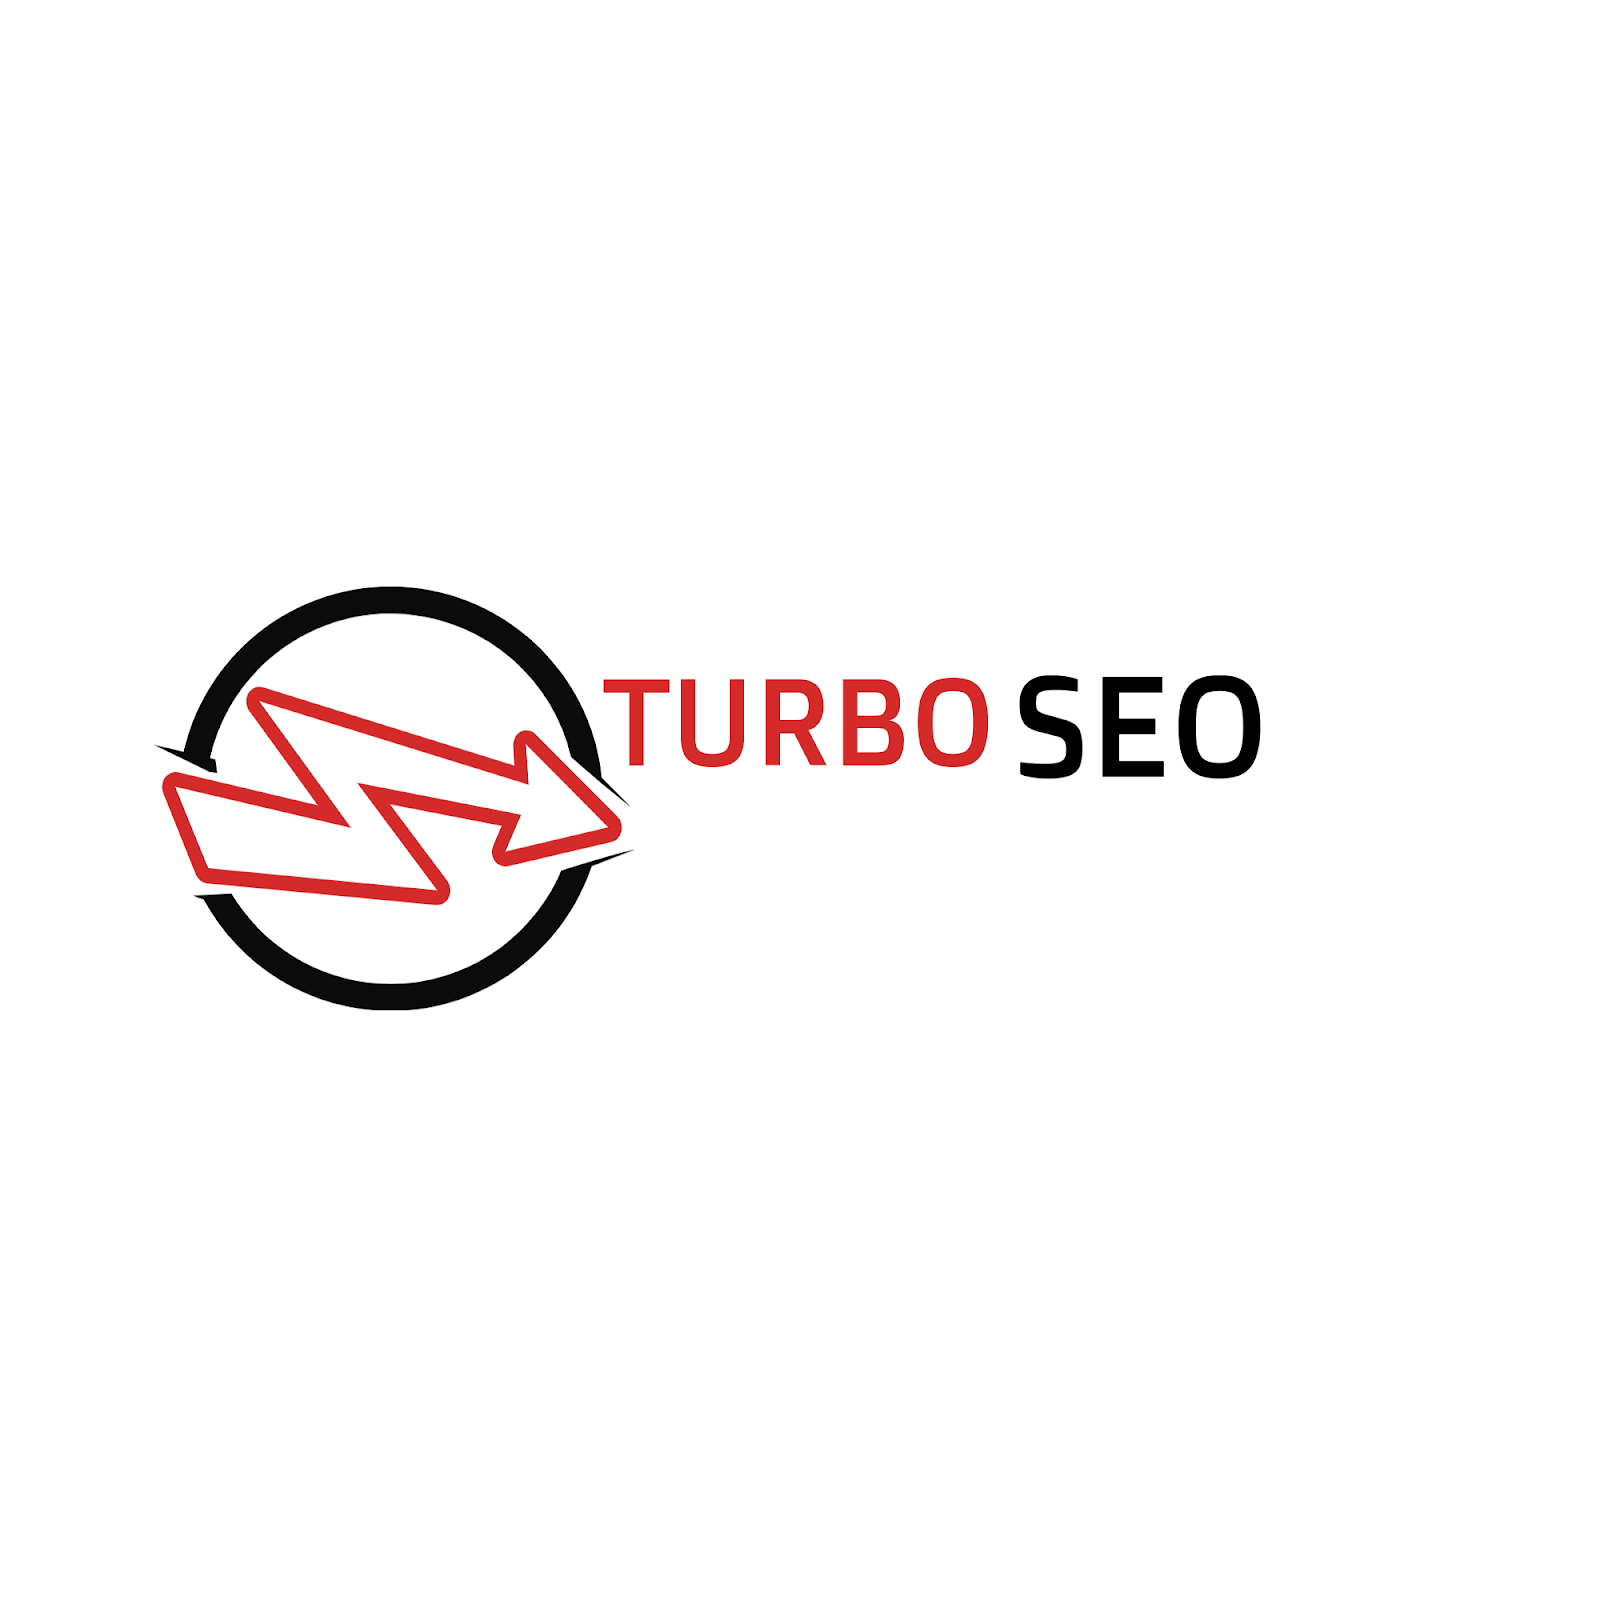 TURBO SEO